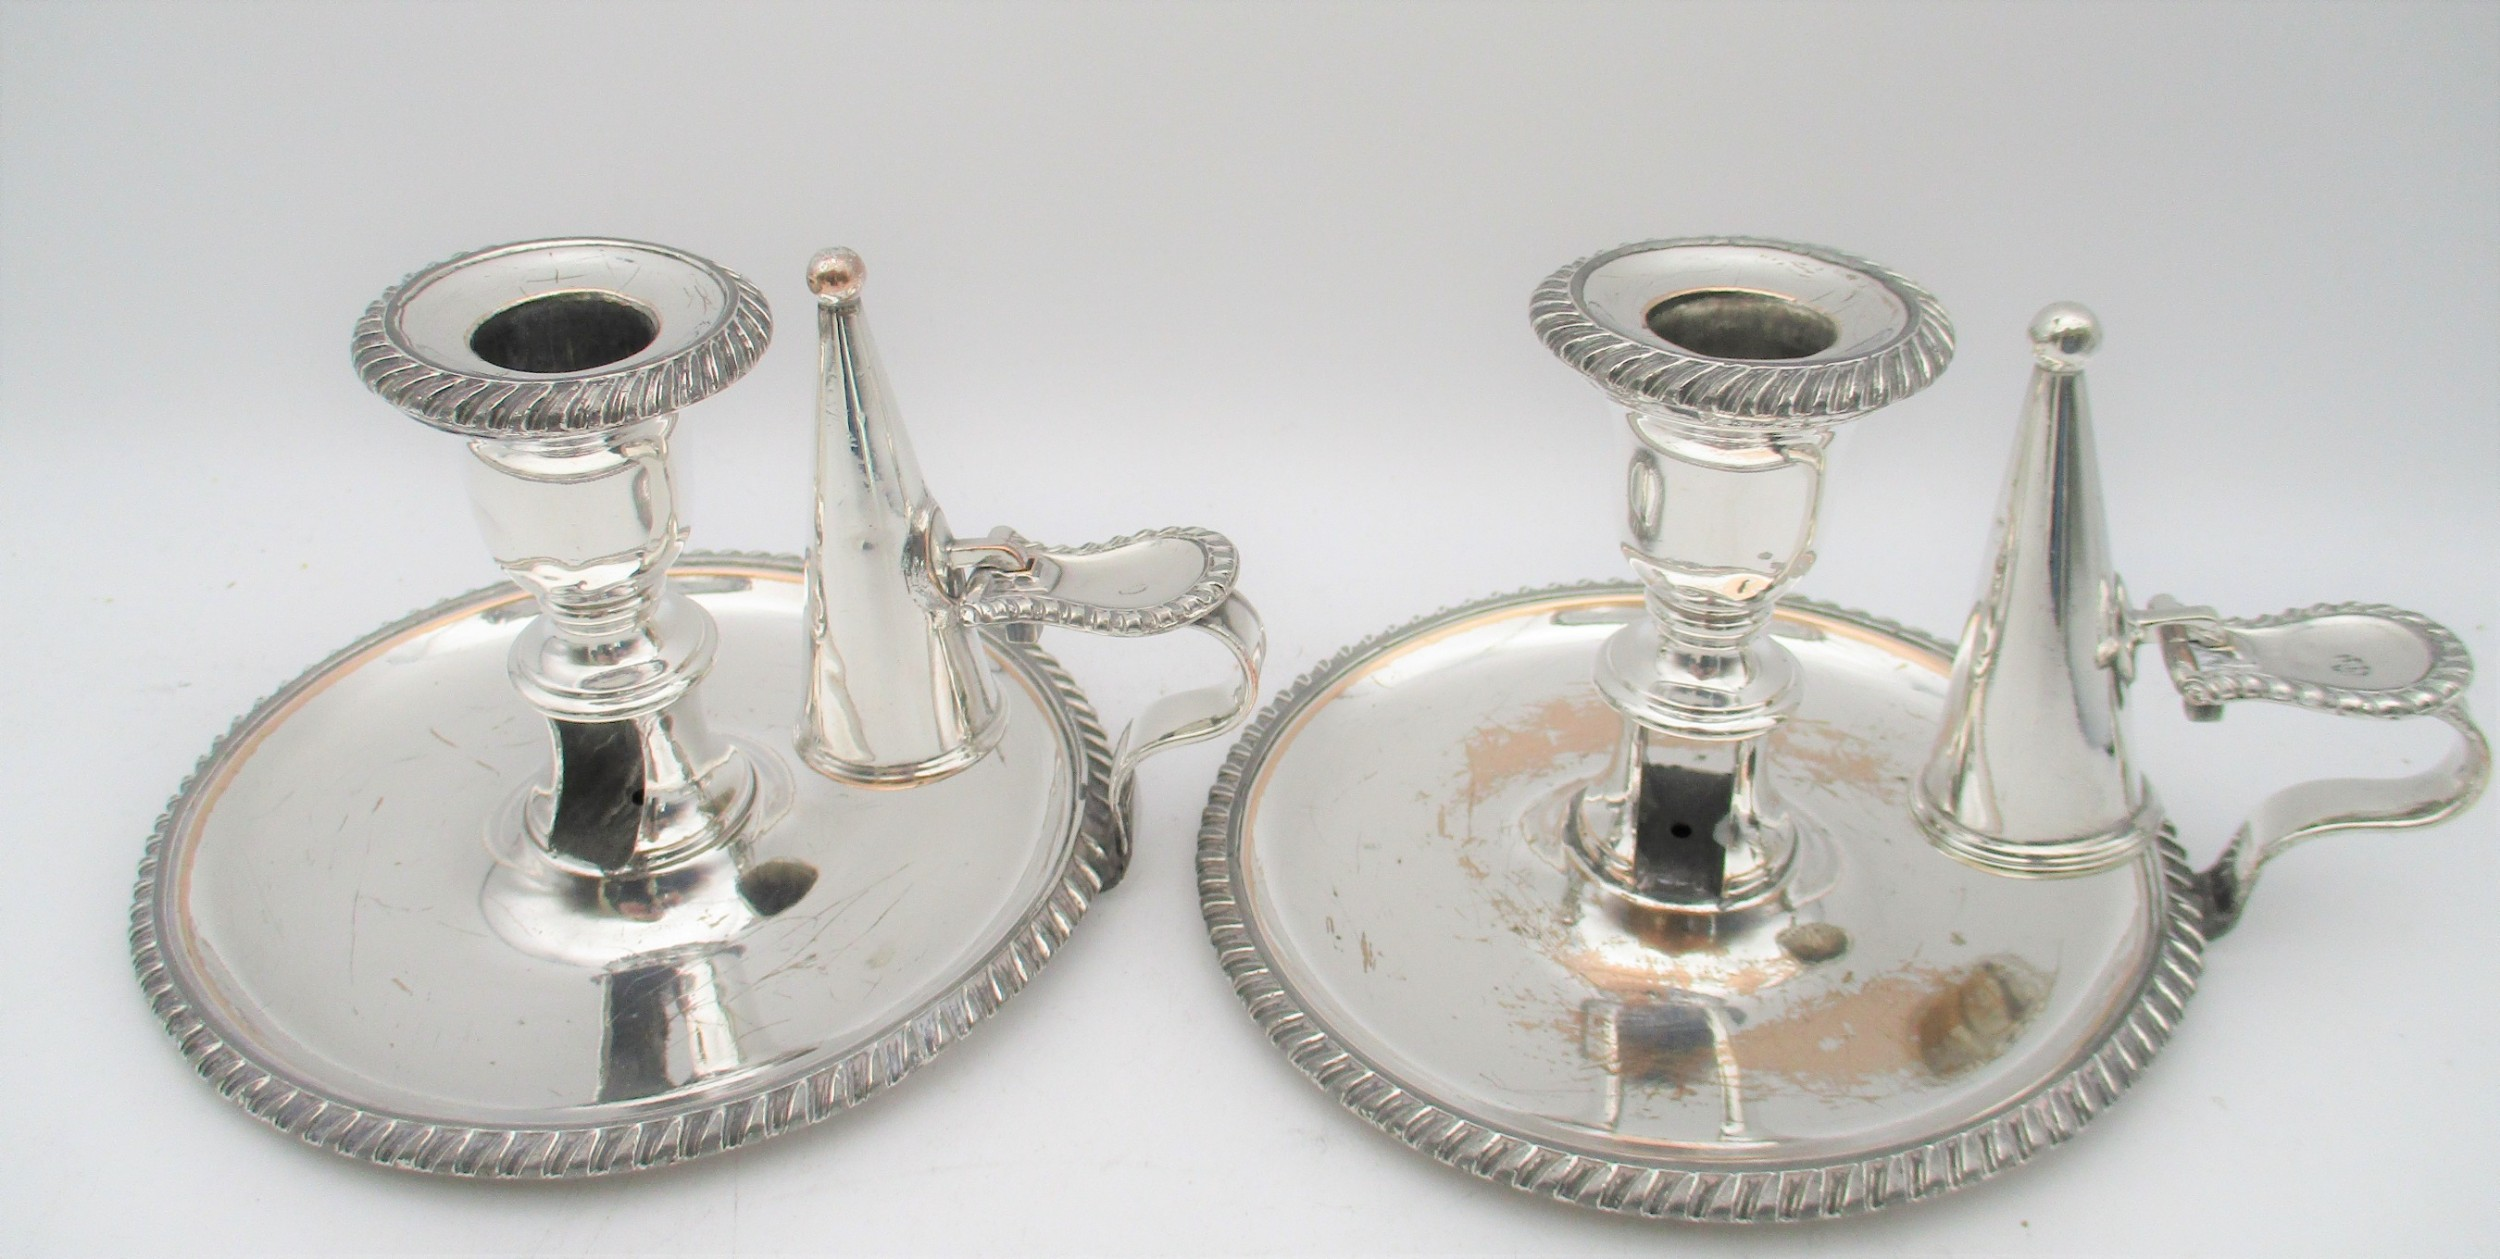 a pair of old sheffield plated chamber candlesticks c1830 by waterhouse